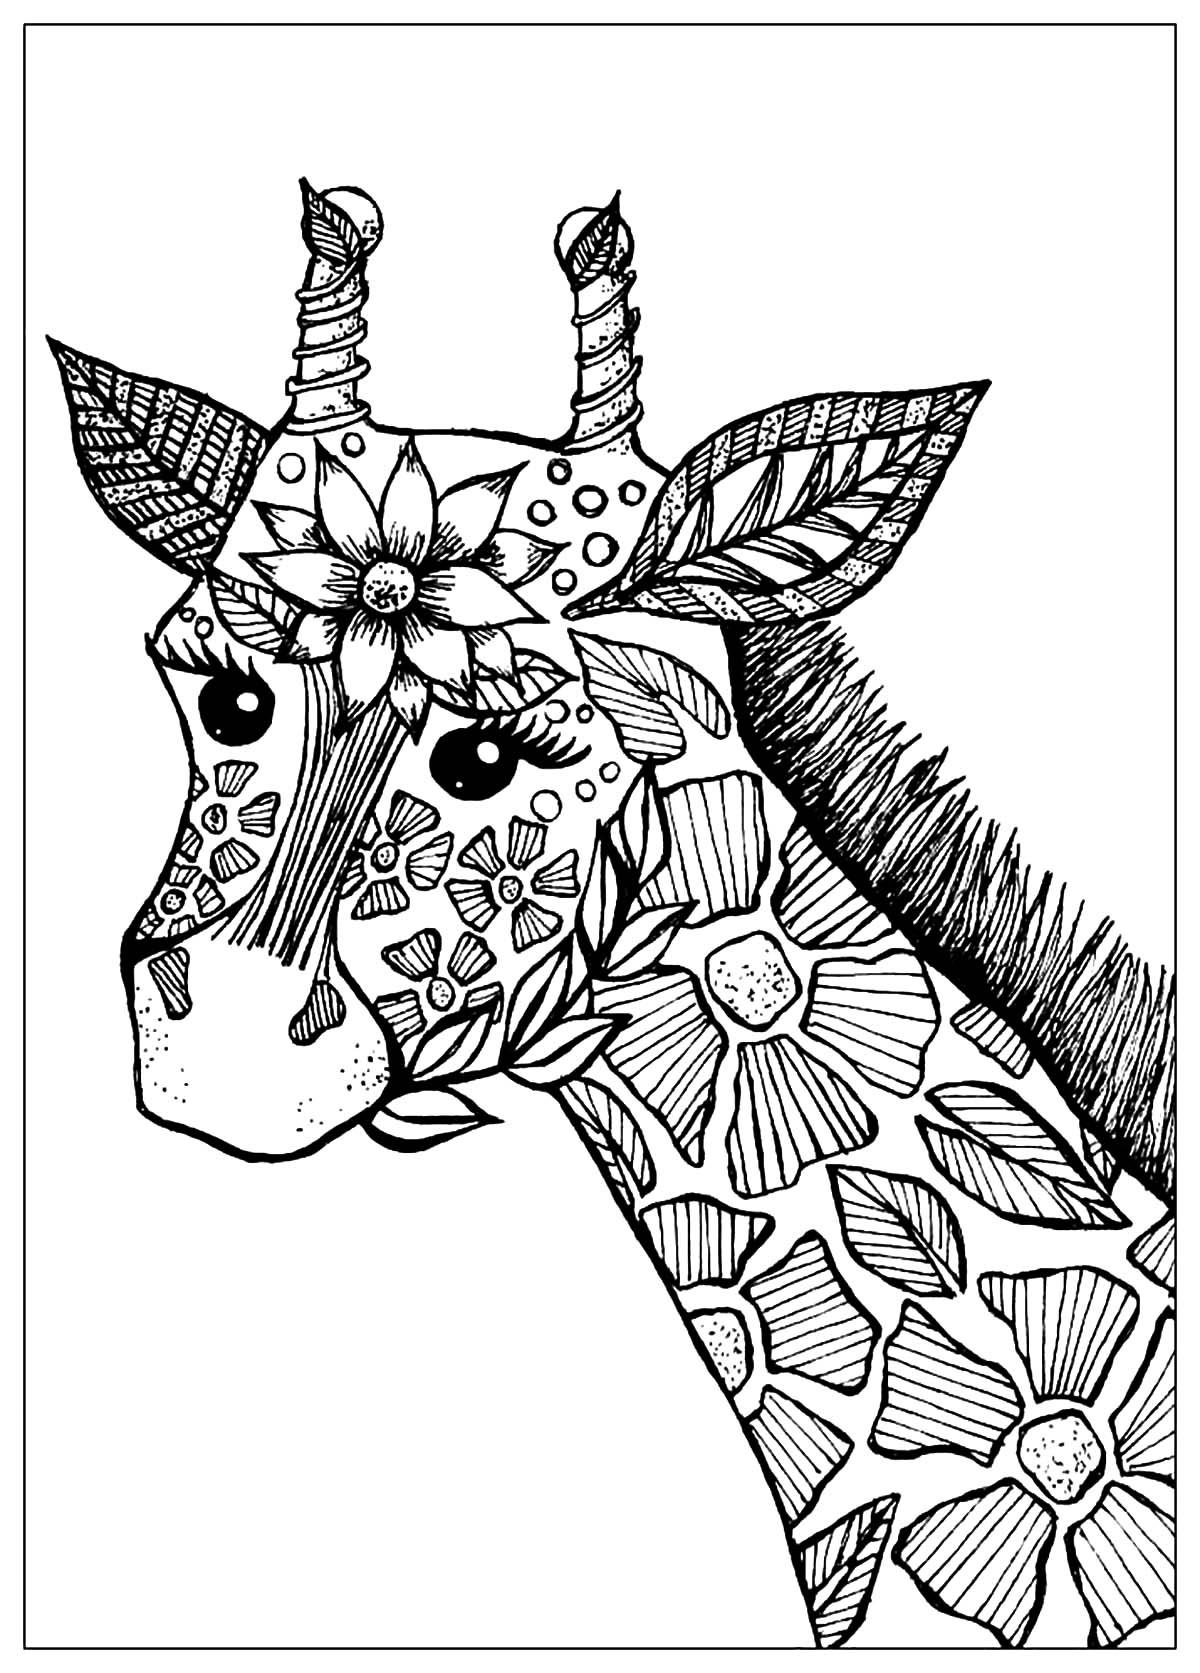 coloring pages of nature and animals ffn animal colouring pages future for nature pages coloring of nature animals and